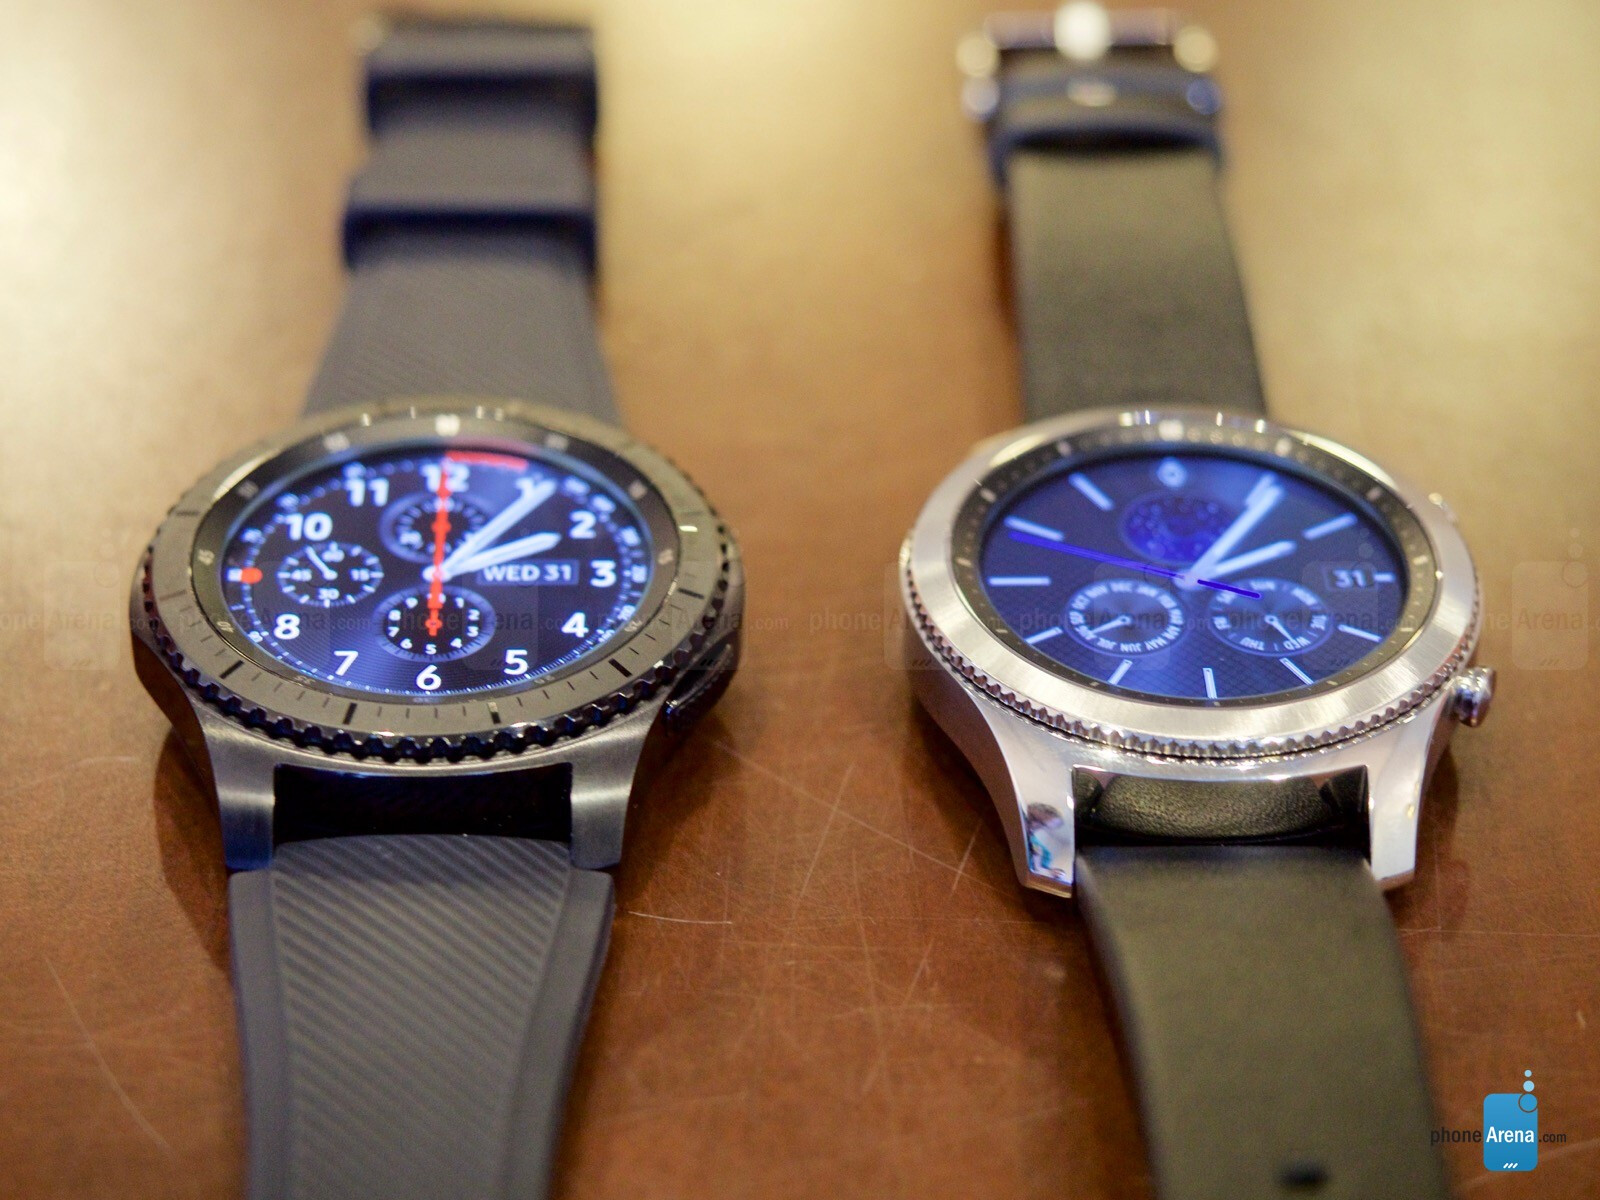 Samsung Gear S3 hands-on: Classic and Frontier versions introduce